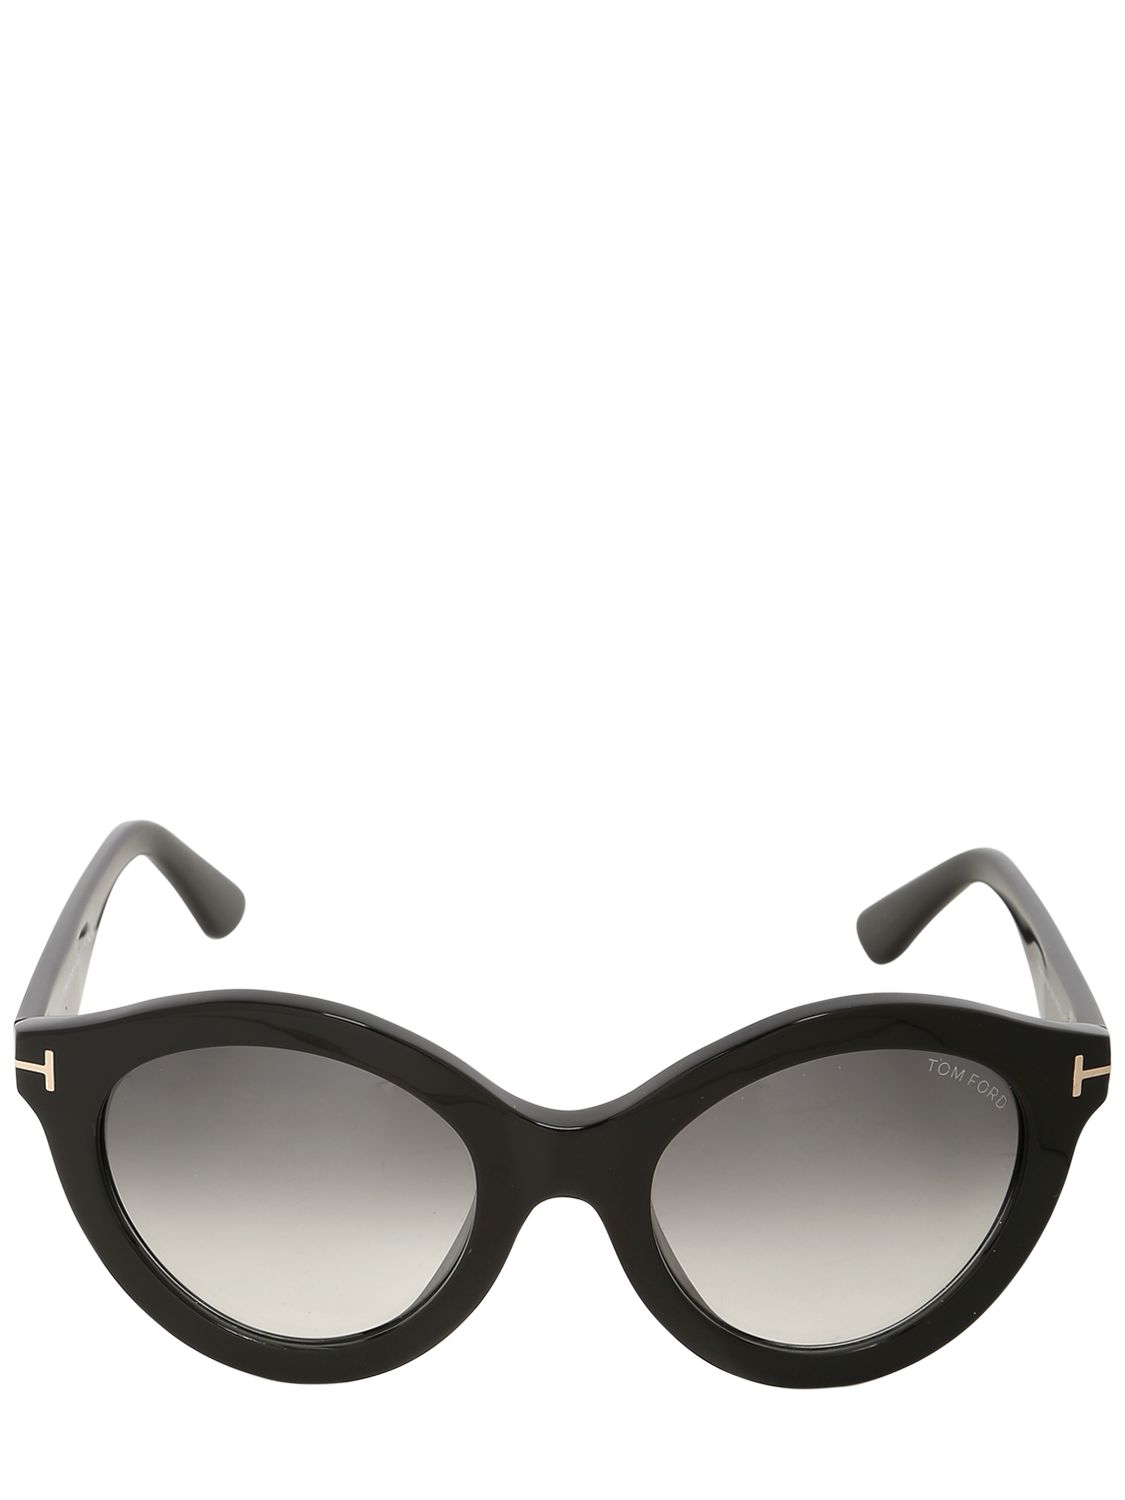 d231bfed35af Lyst - Tom Ford Chiara Rounded Shiny Acetate Sunglasses in Black for Men